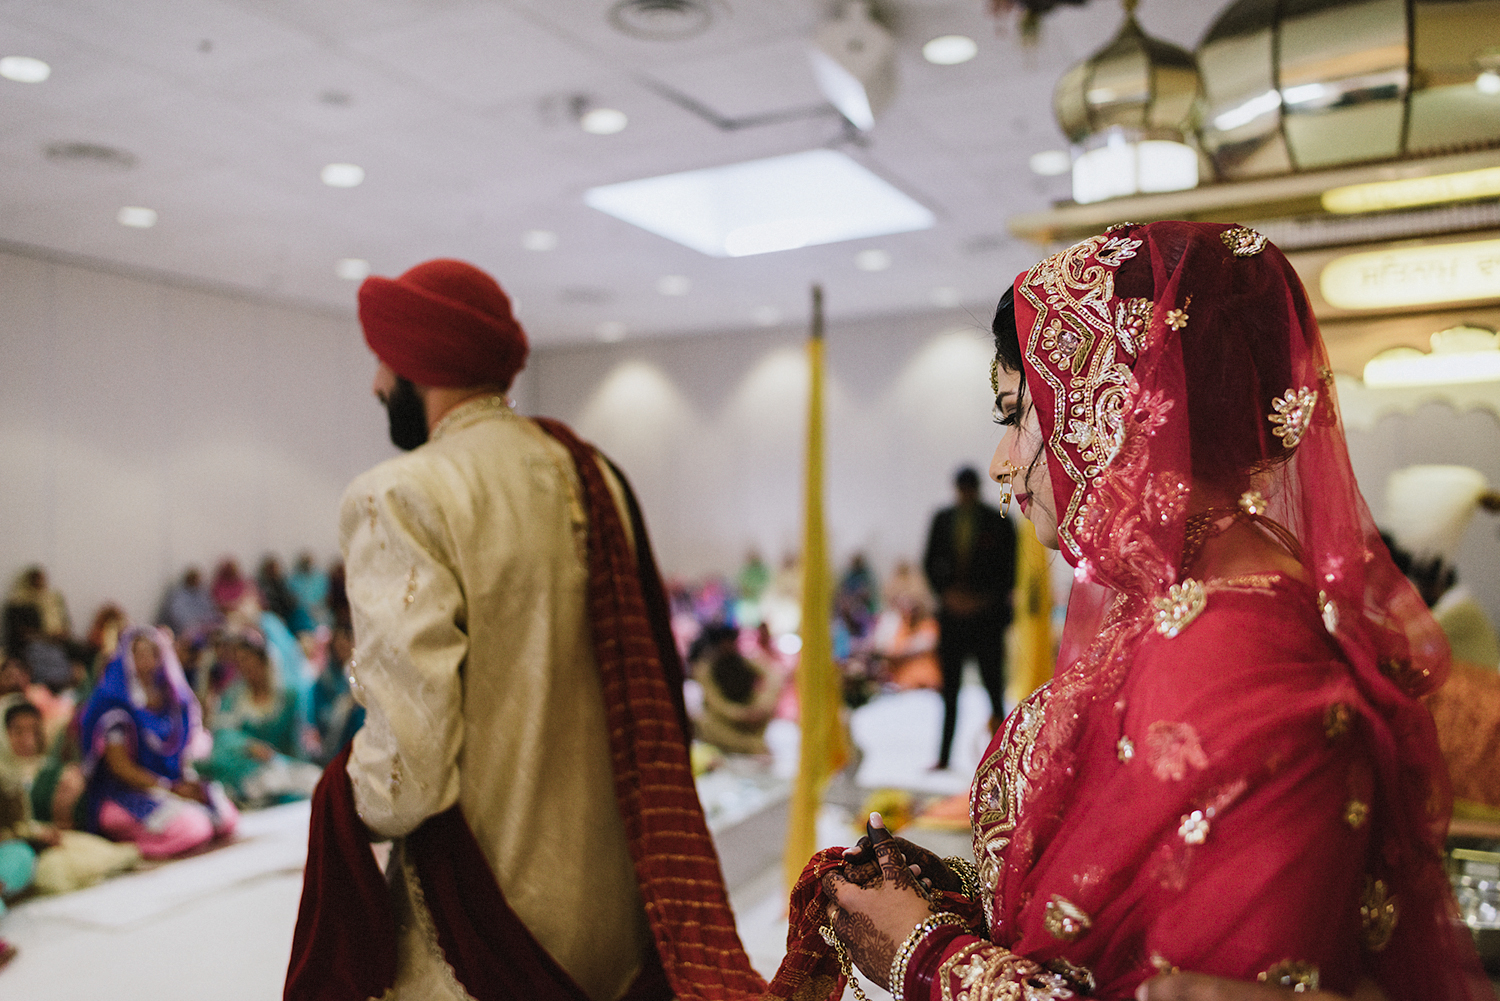 Toronto-Photojournalism-wedding-photographers-3B-Photography-Candid-Documentary-Film-Photography-Analog-Ontario-Hamilton-Port-Perry-Venue-temple-ceremony-sikh-tradition-bride-and-groom.jpg